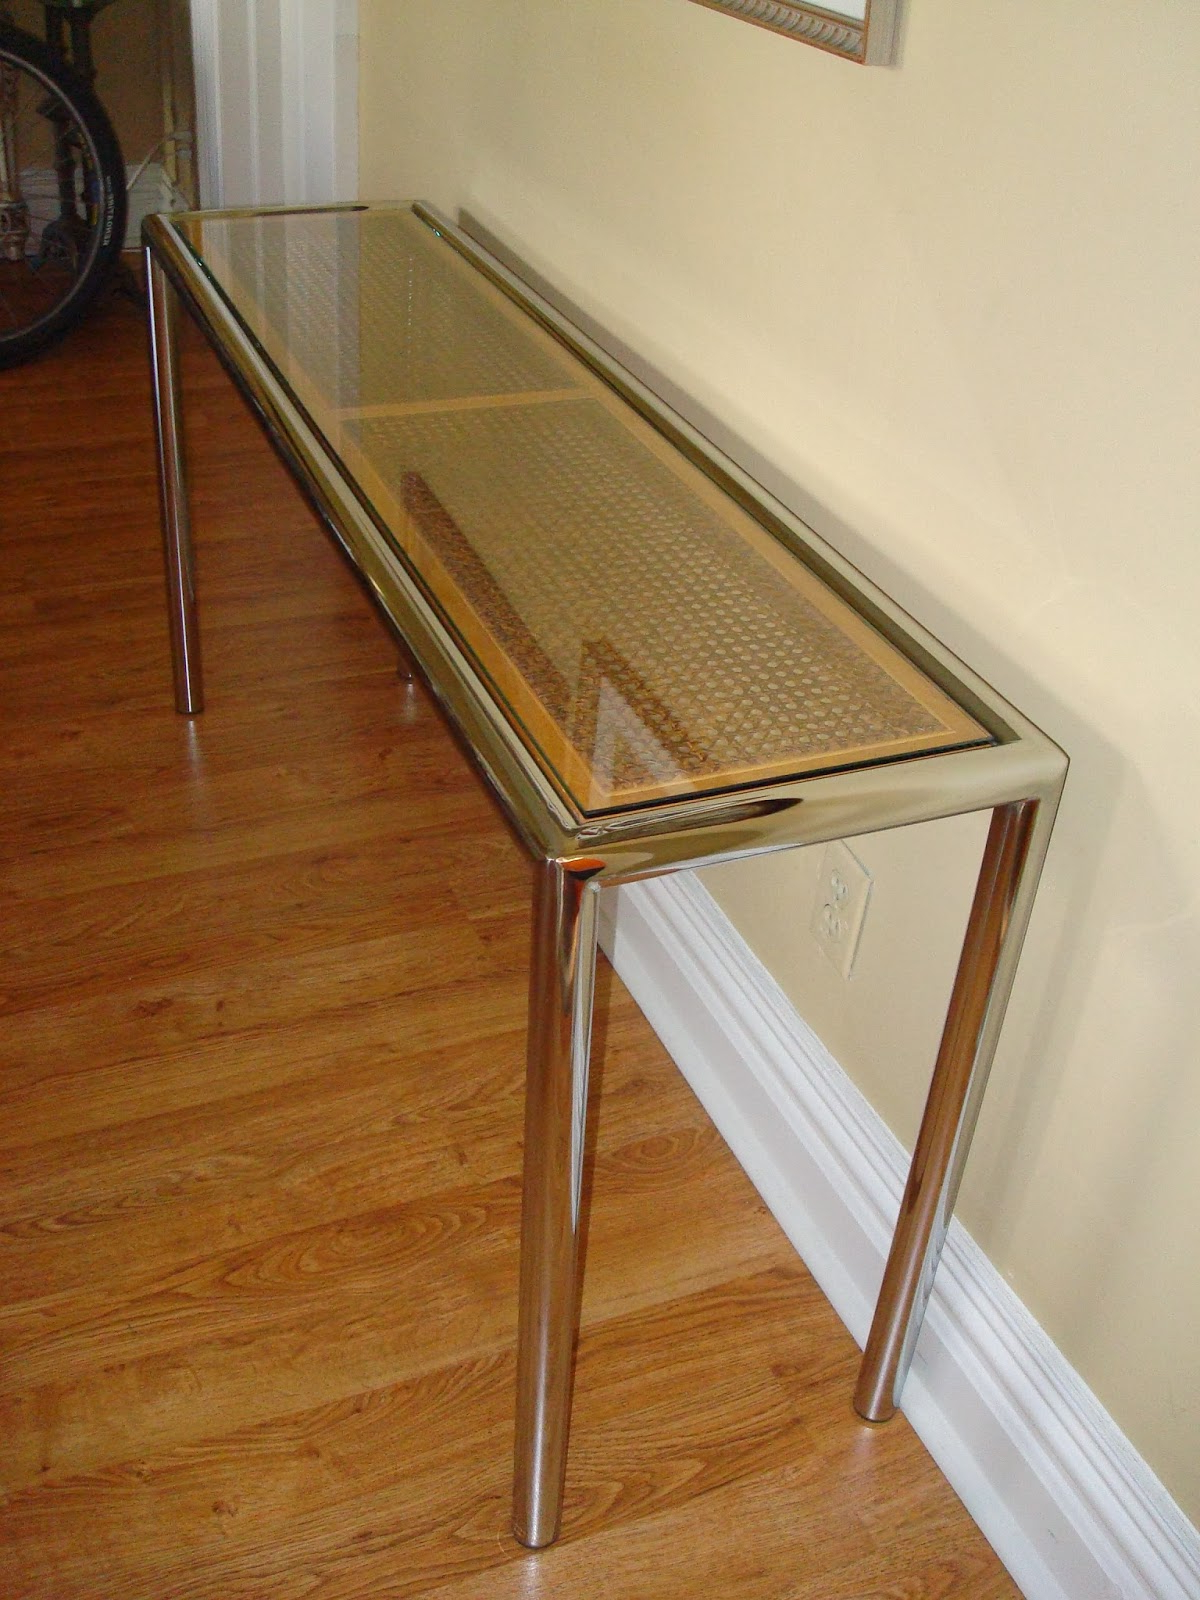 Preferred Era Antiques: 1970´s Milo Baughman Tubular Chrome Sofa/console Table Regarding Era Glass Console Tables (View 14 of 20)